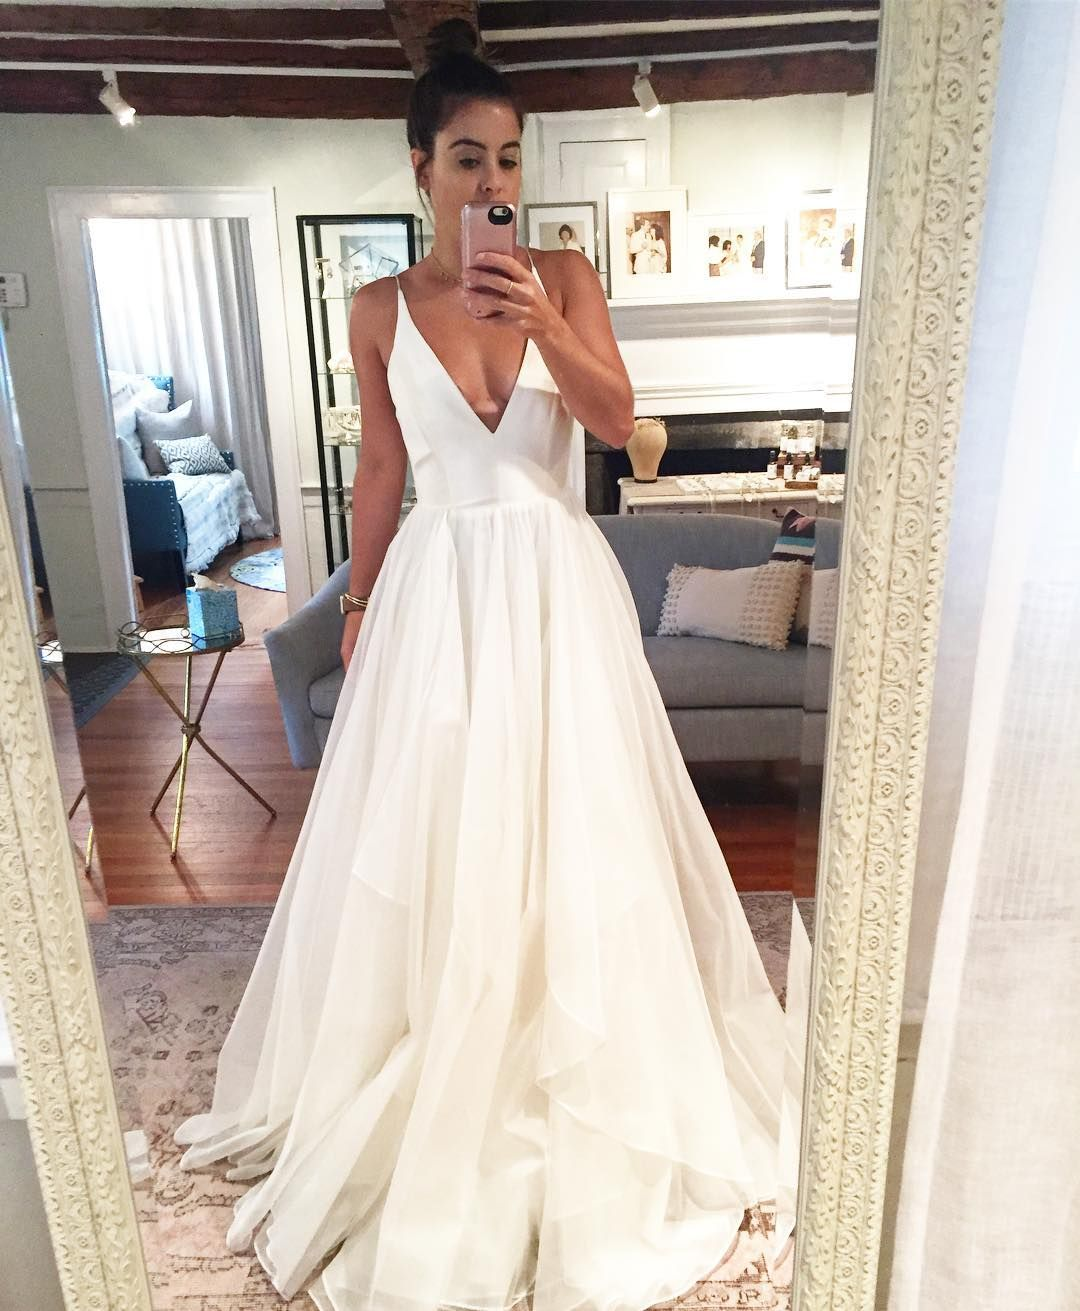 Simple Wedding Dresses For Fall: Gabrielle By @leannemarshallofficial Has Arrived! 💕💕💕